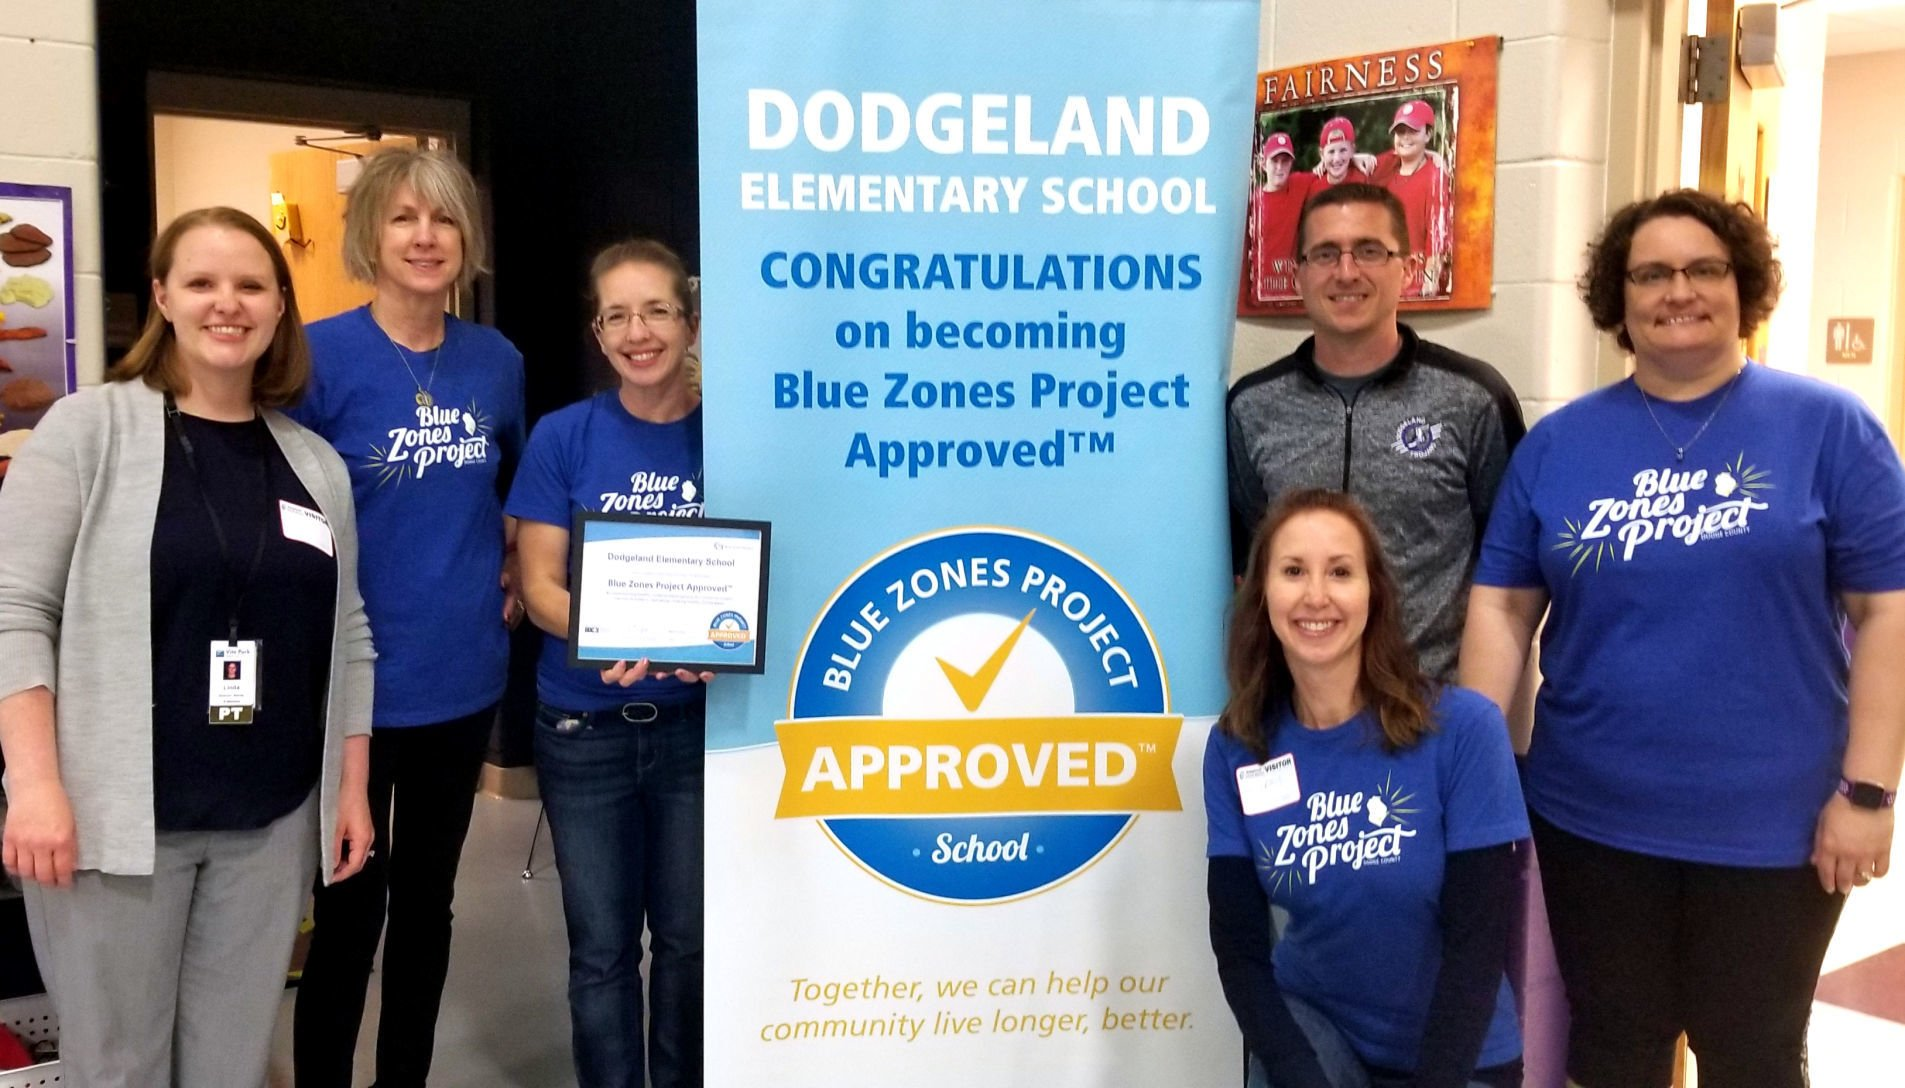 Dodgeland Elementary designated as Blue Zones approved